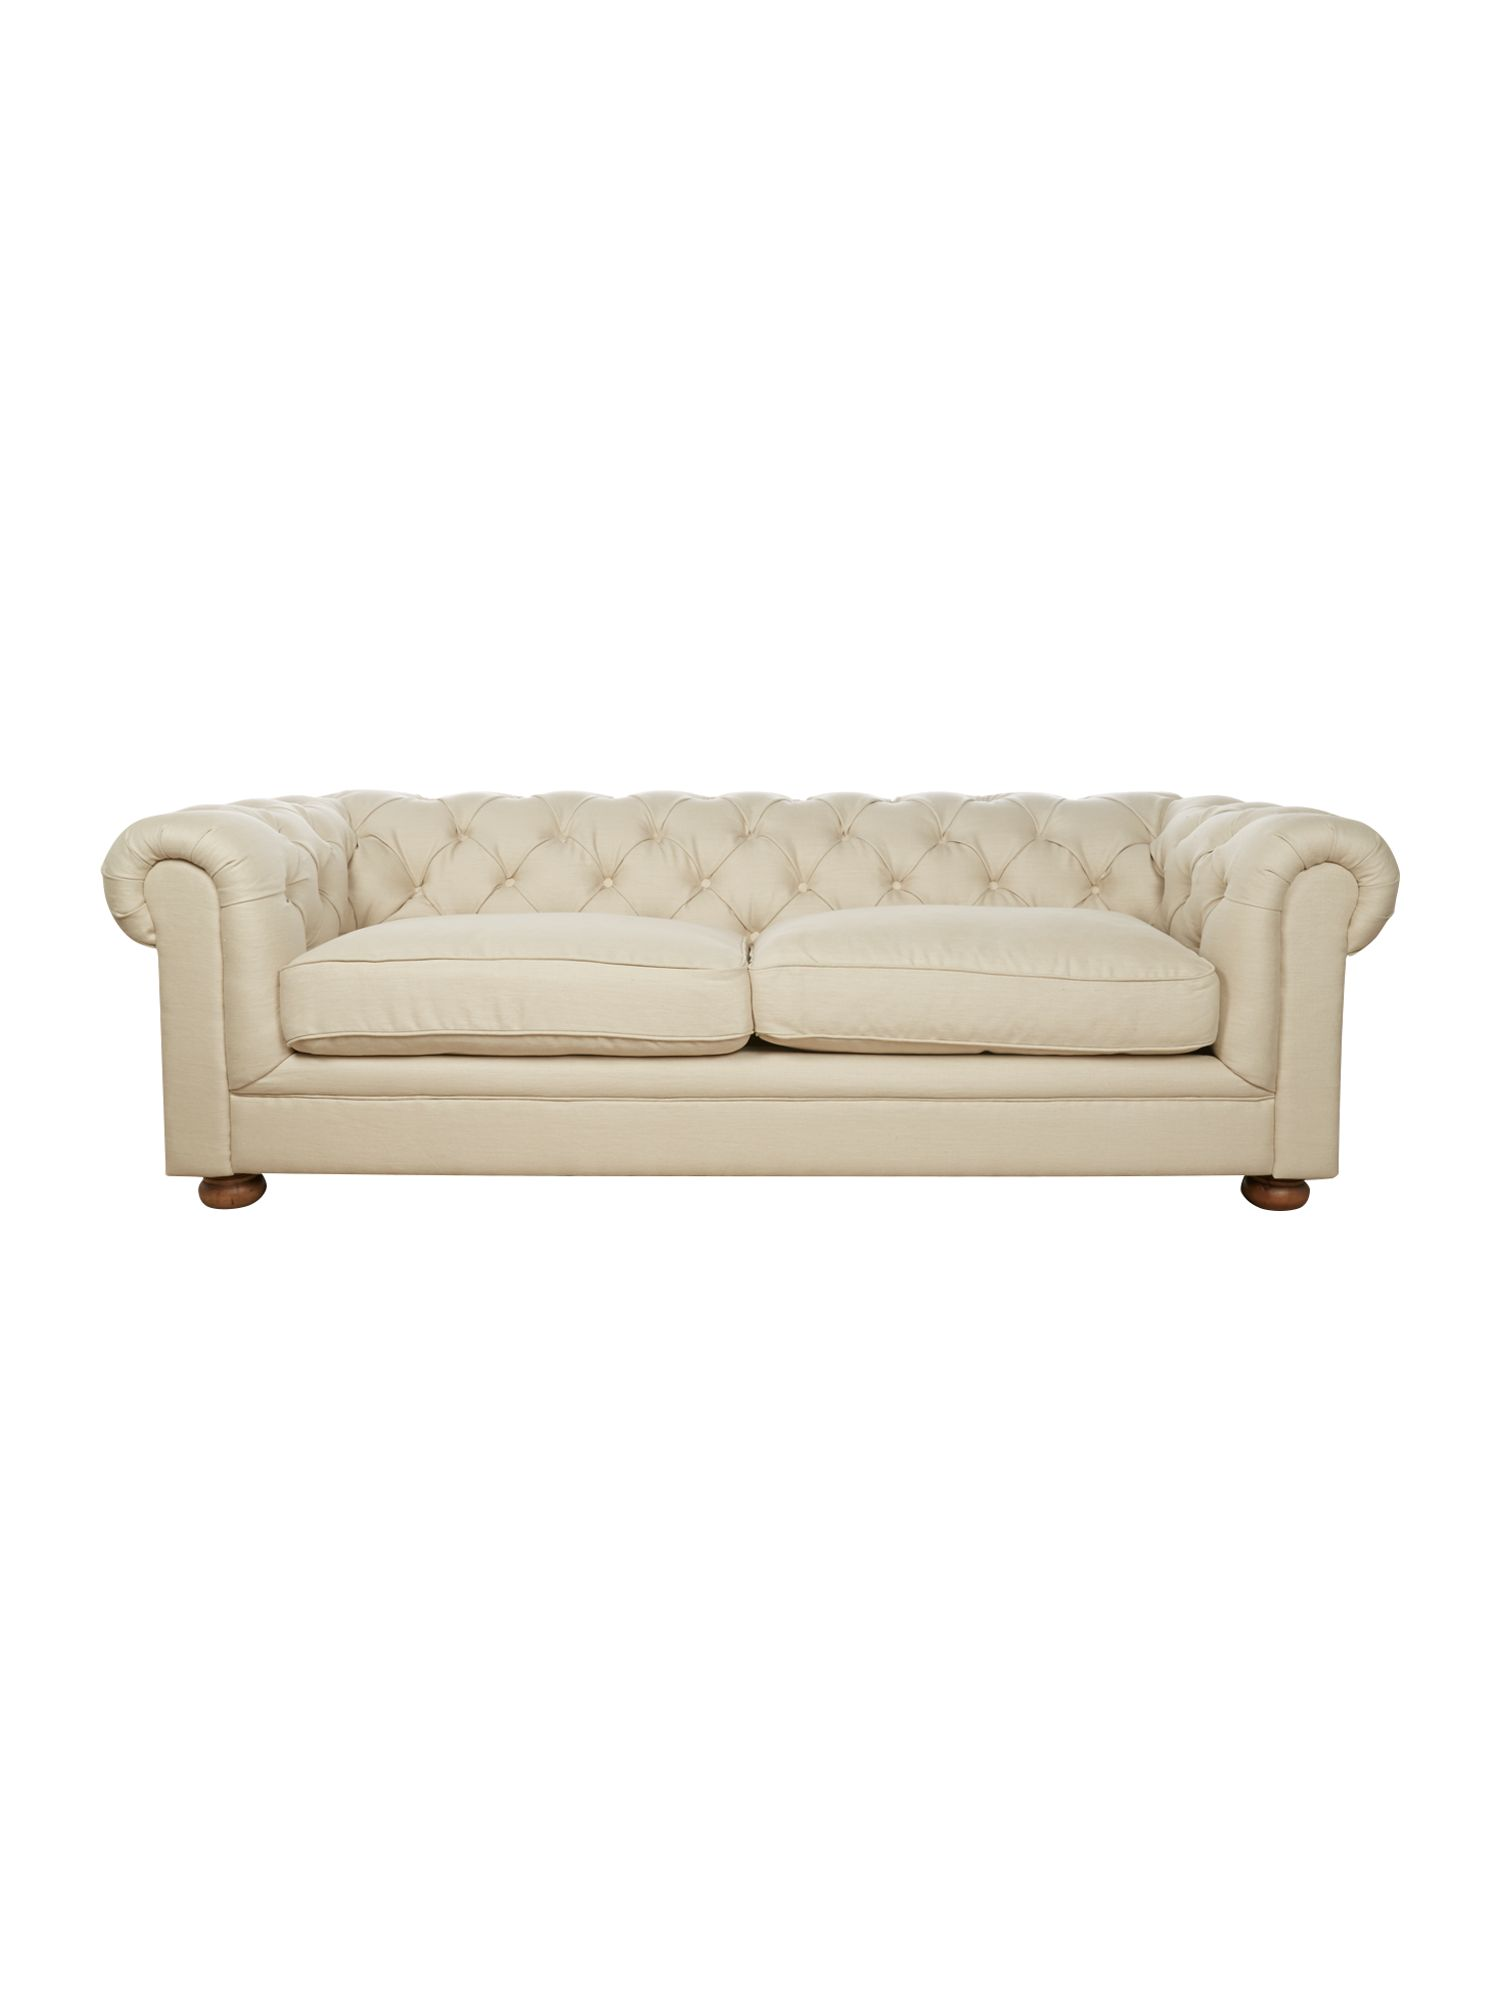 Chester large sofa